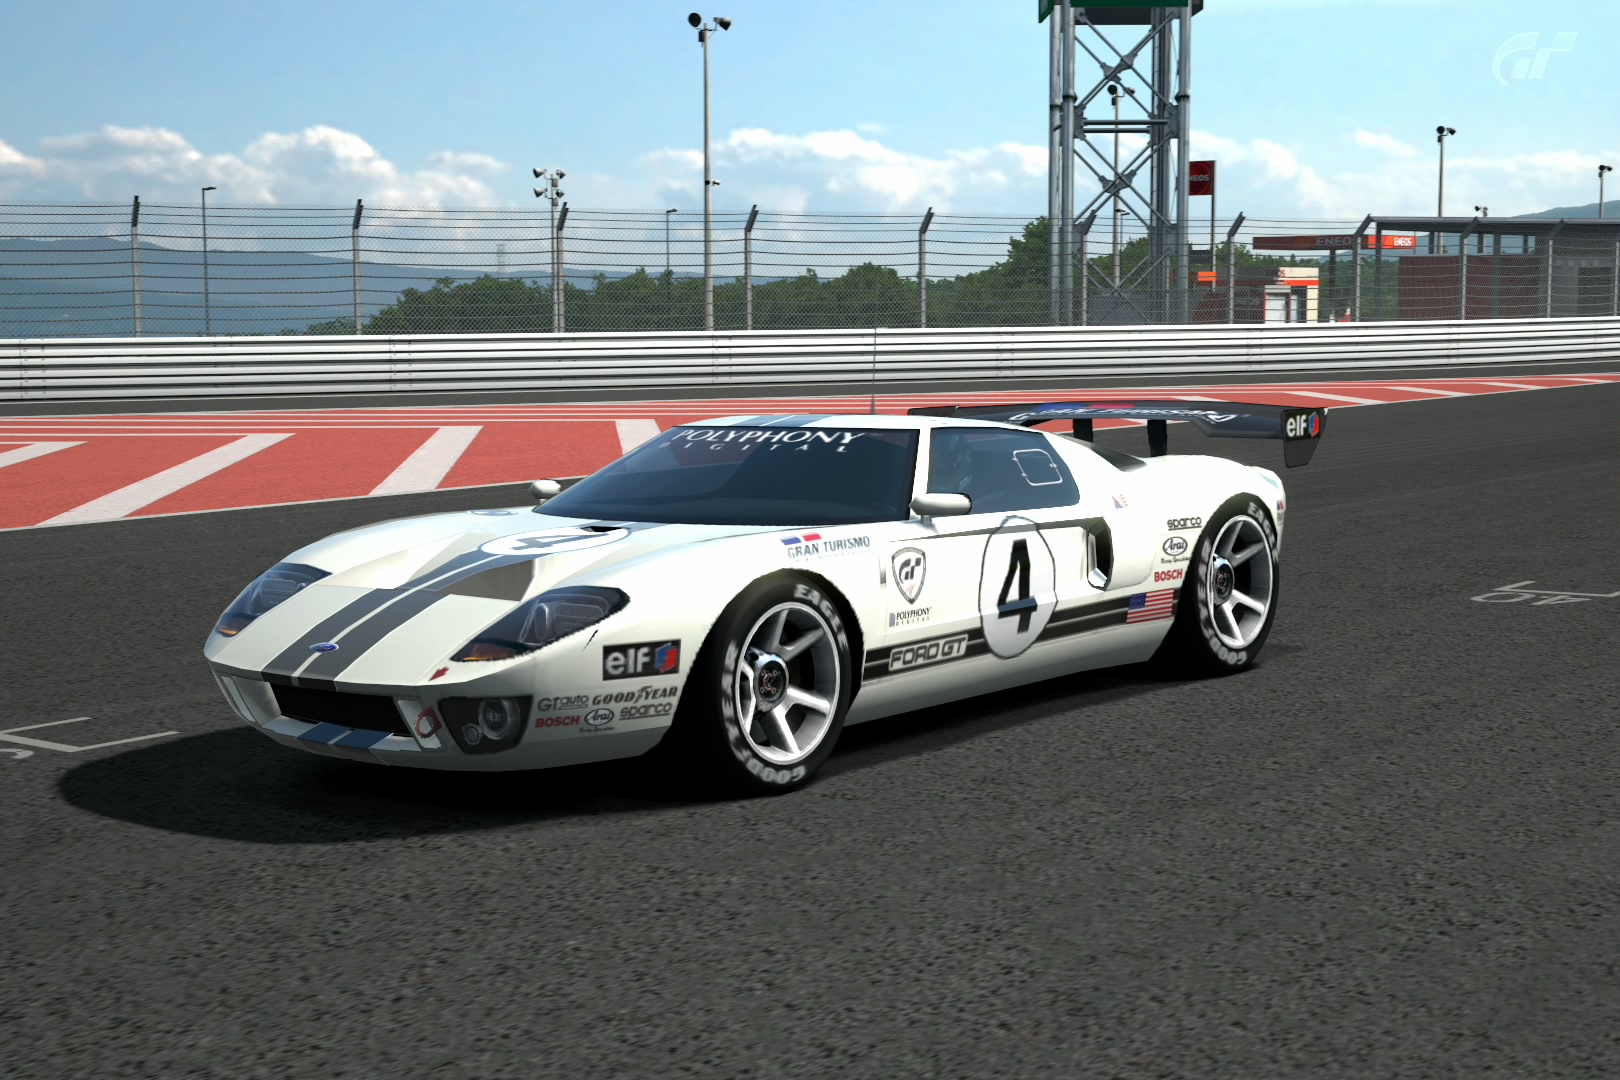 comment avoir la ford gt lm race car gt5